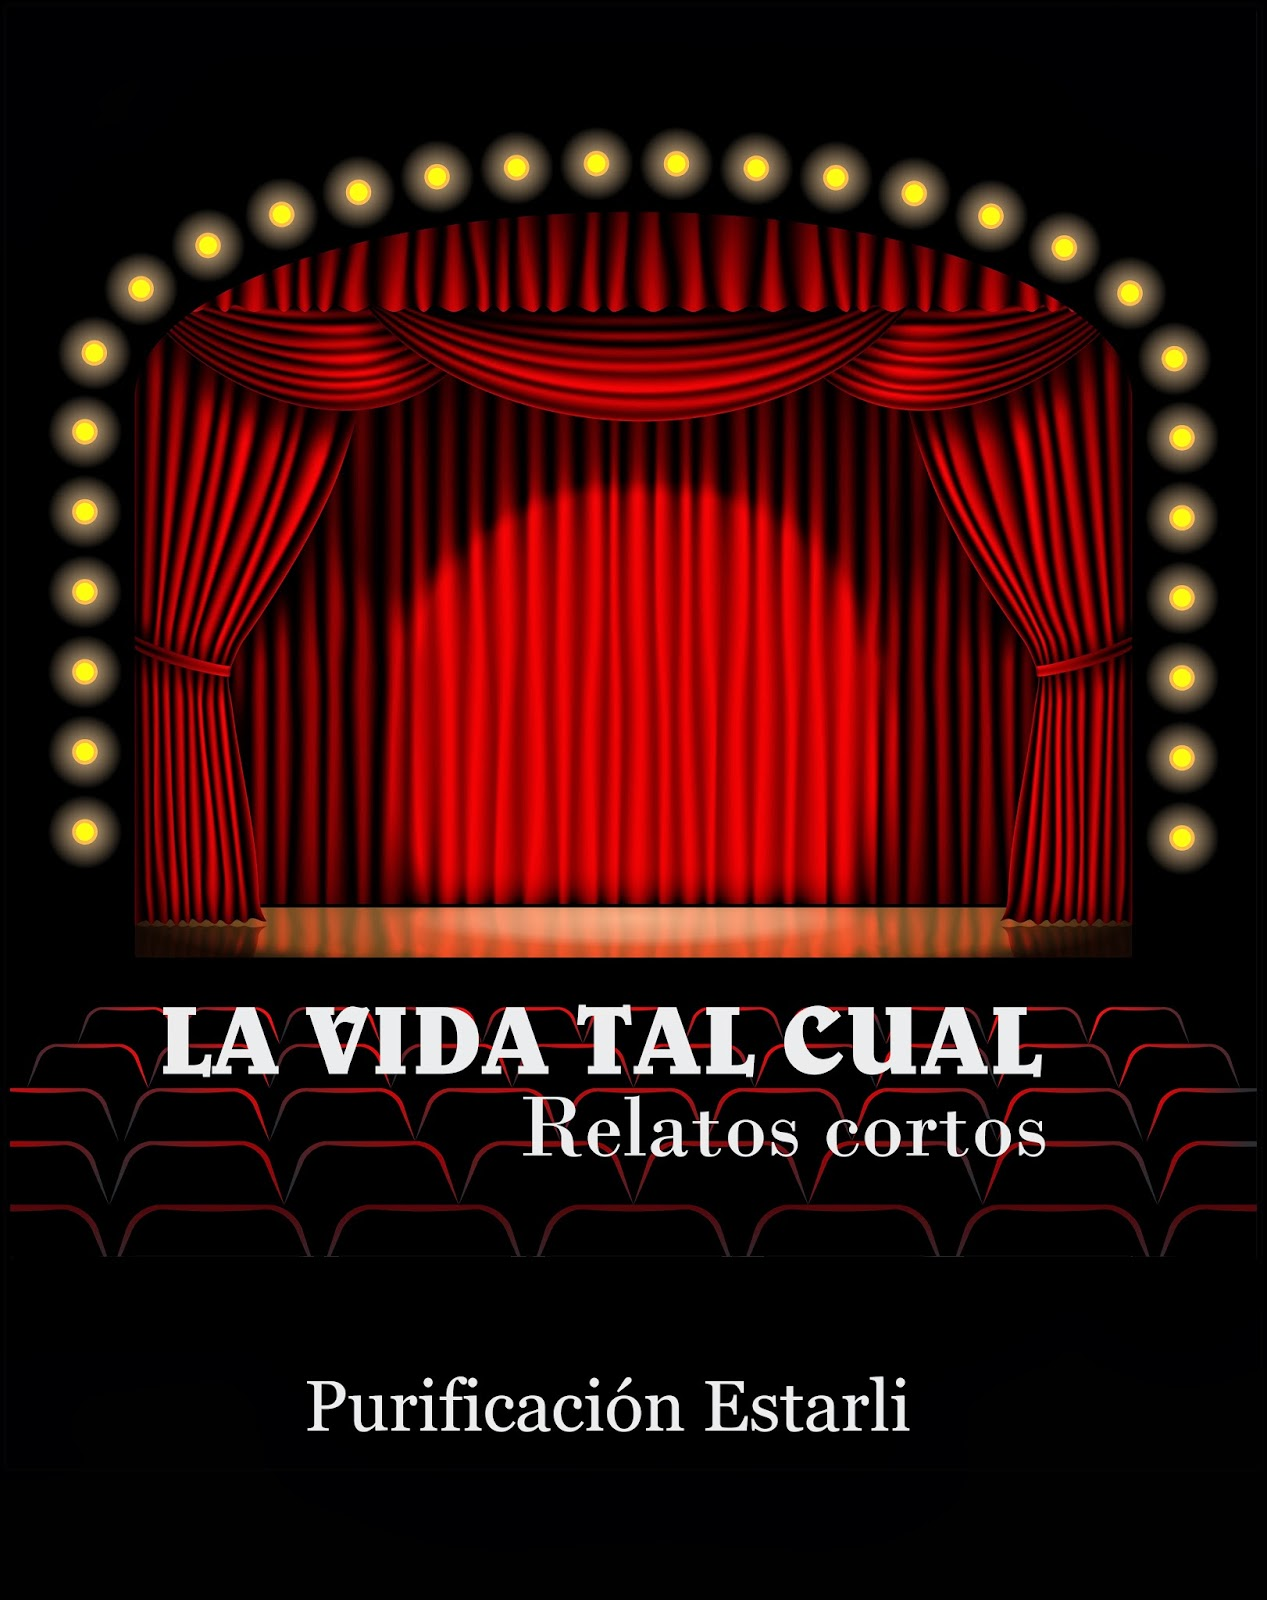 http://www.amazon.es/VIDA-TAL-CUAL-Relatos-cortos-ebook/dp/B00HSIU10G/ref=sr_1_1?s=digital-text&ie=UTF8&qid=1390296078&sr=1-1&keywords=la+vida+tal+cual